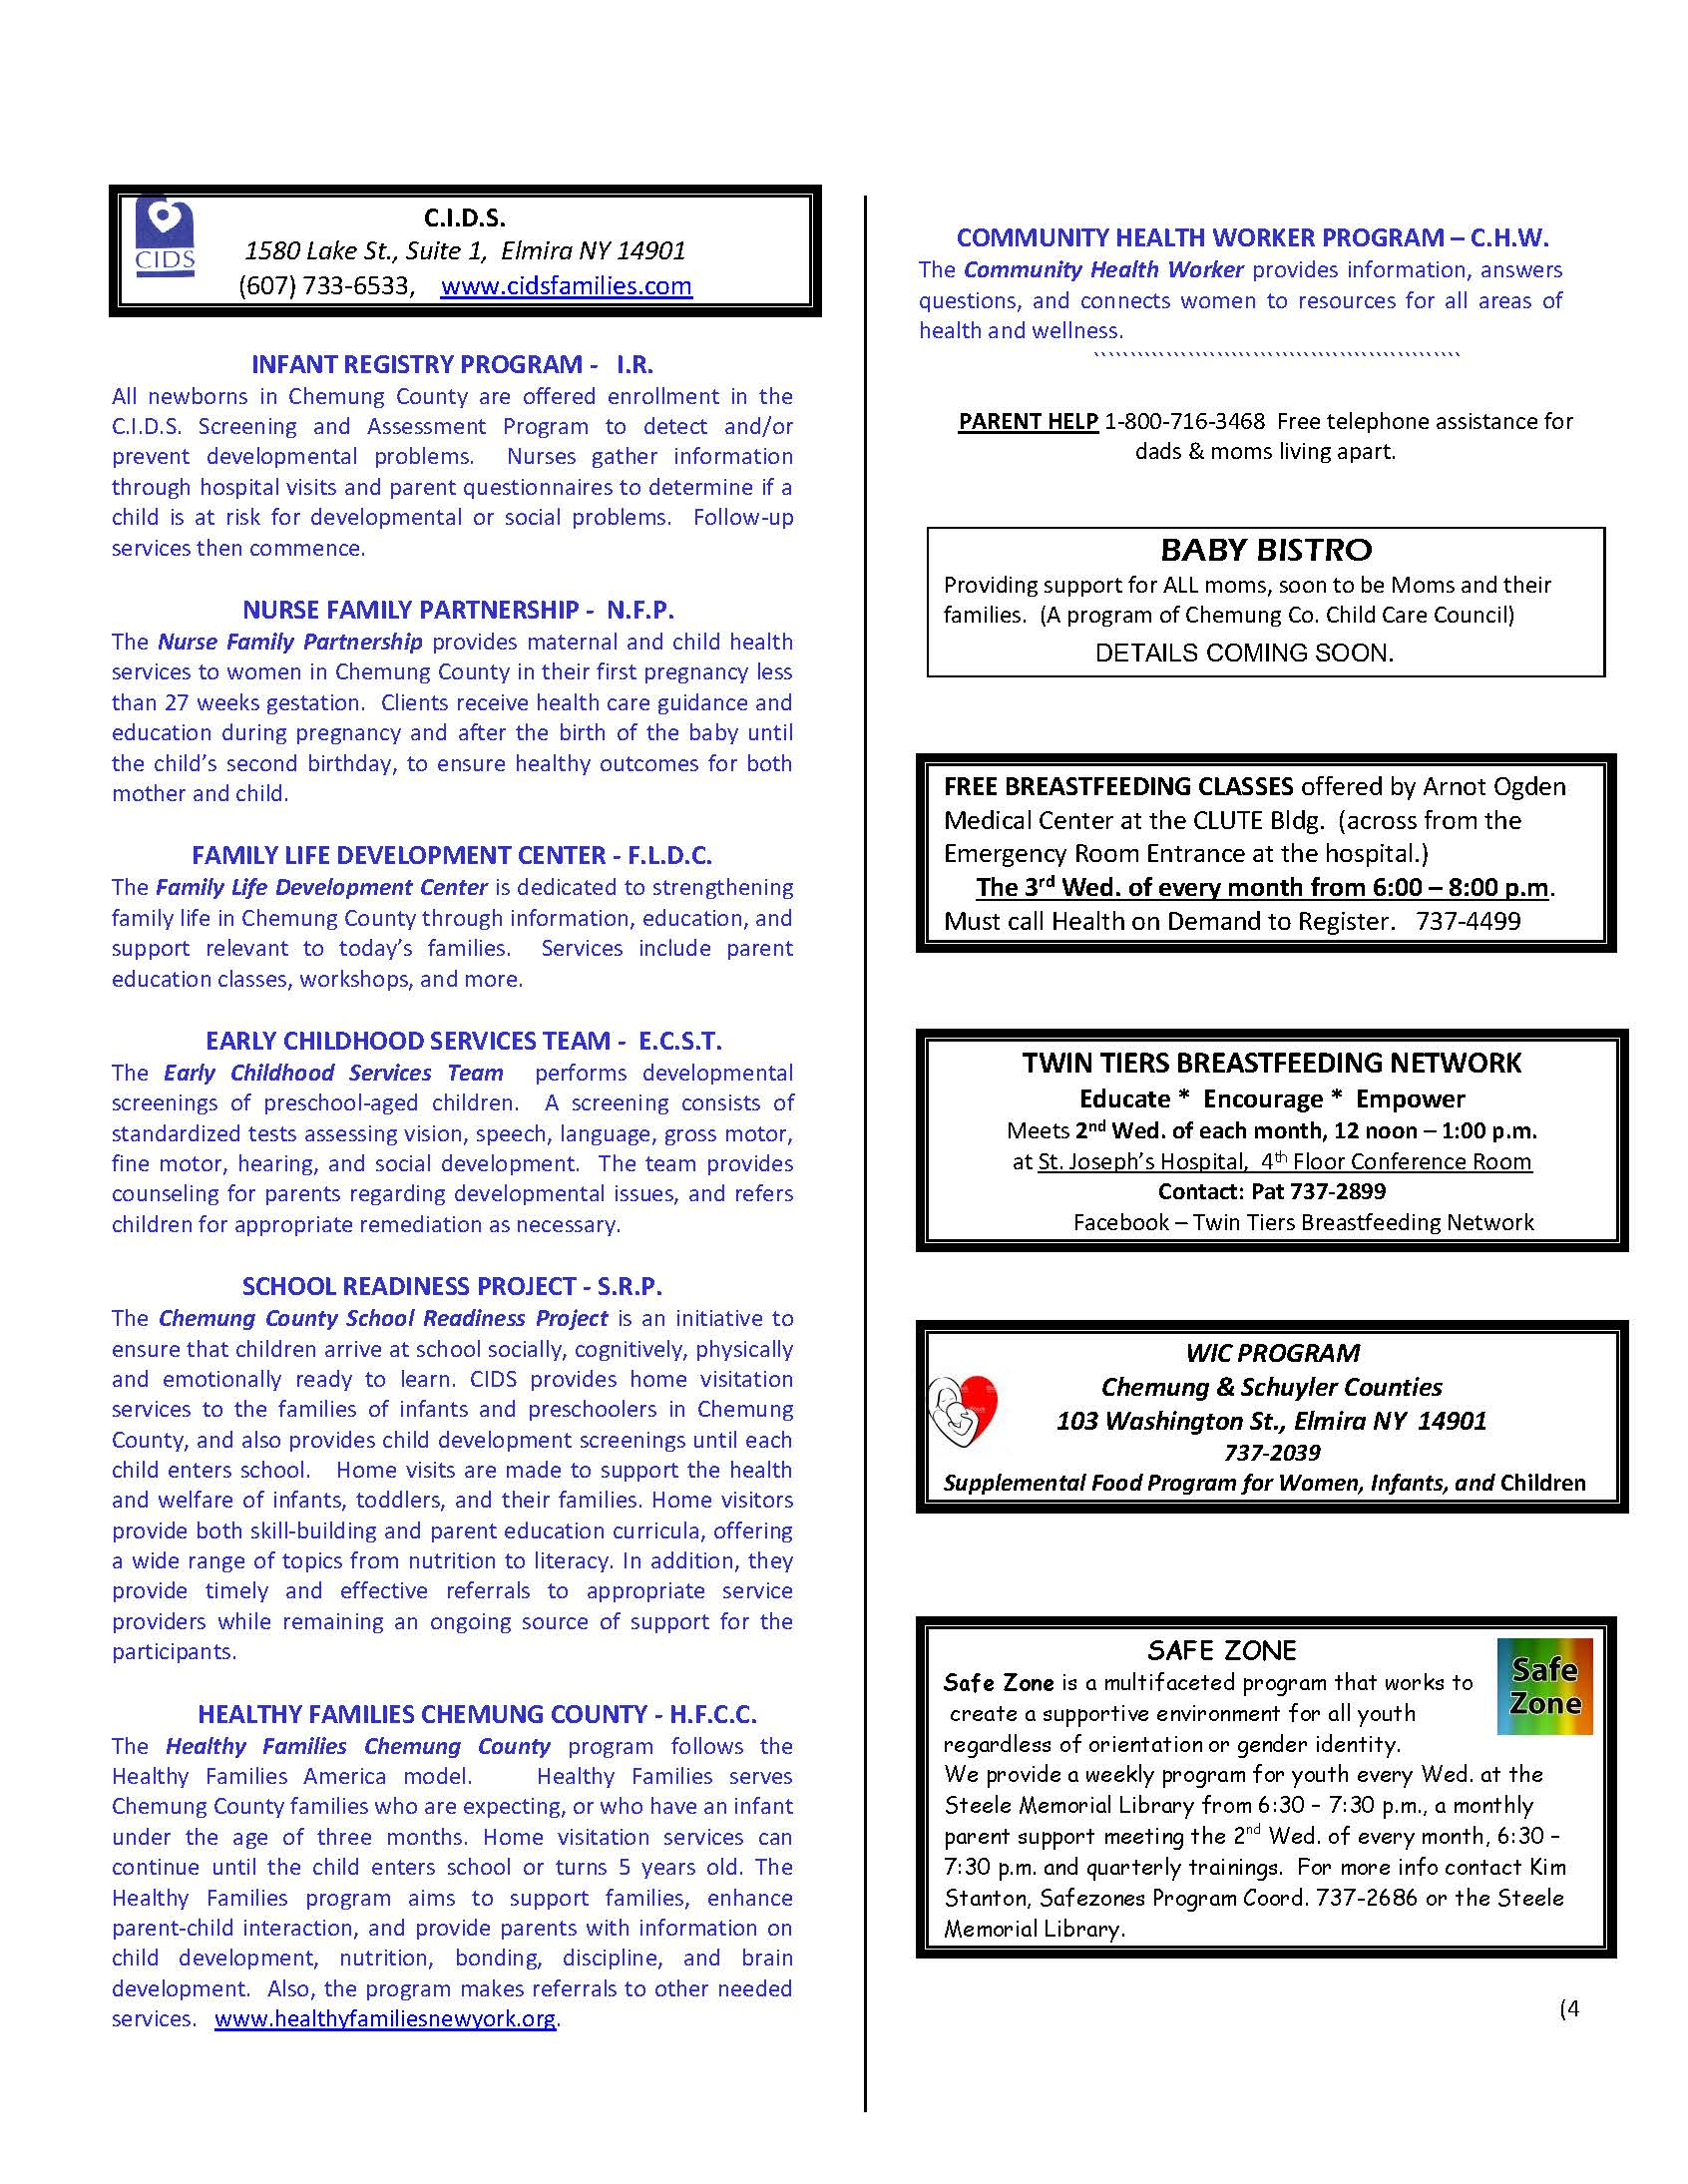 OCTOBER NEWSLETTER 2019 Page 4 - CIDS October News and Services Update